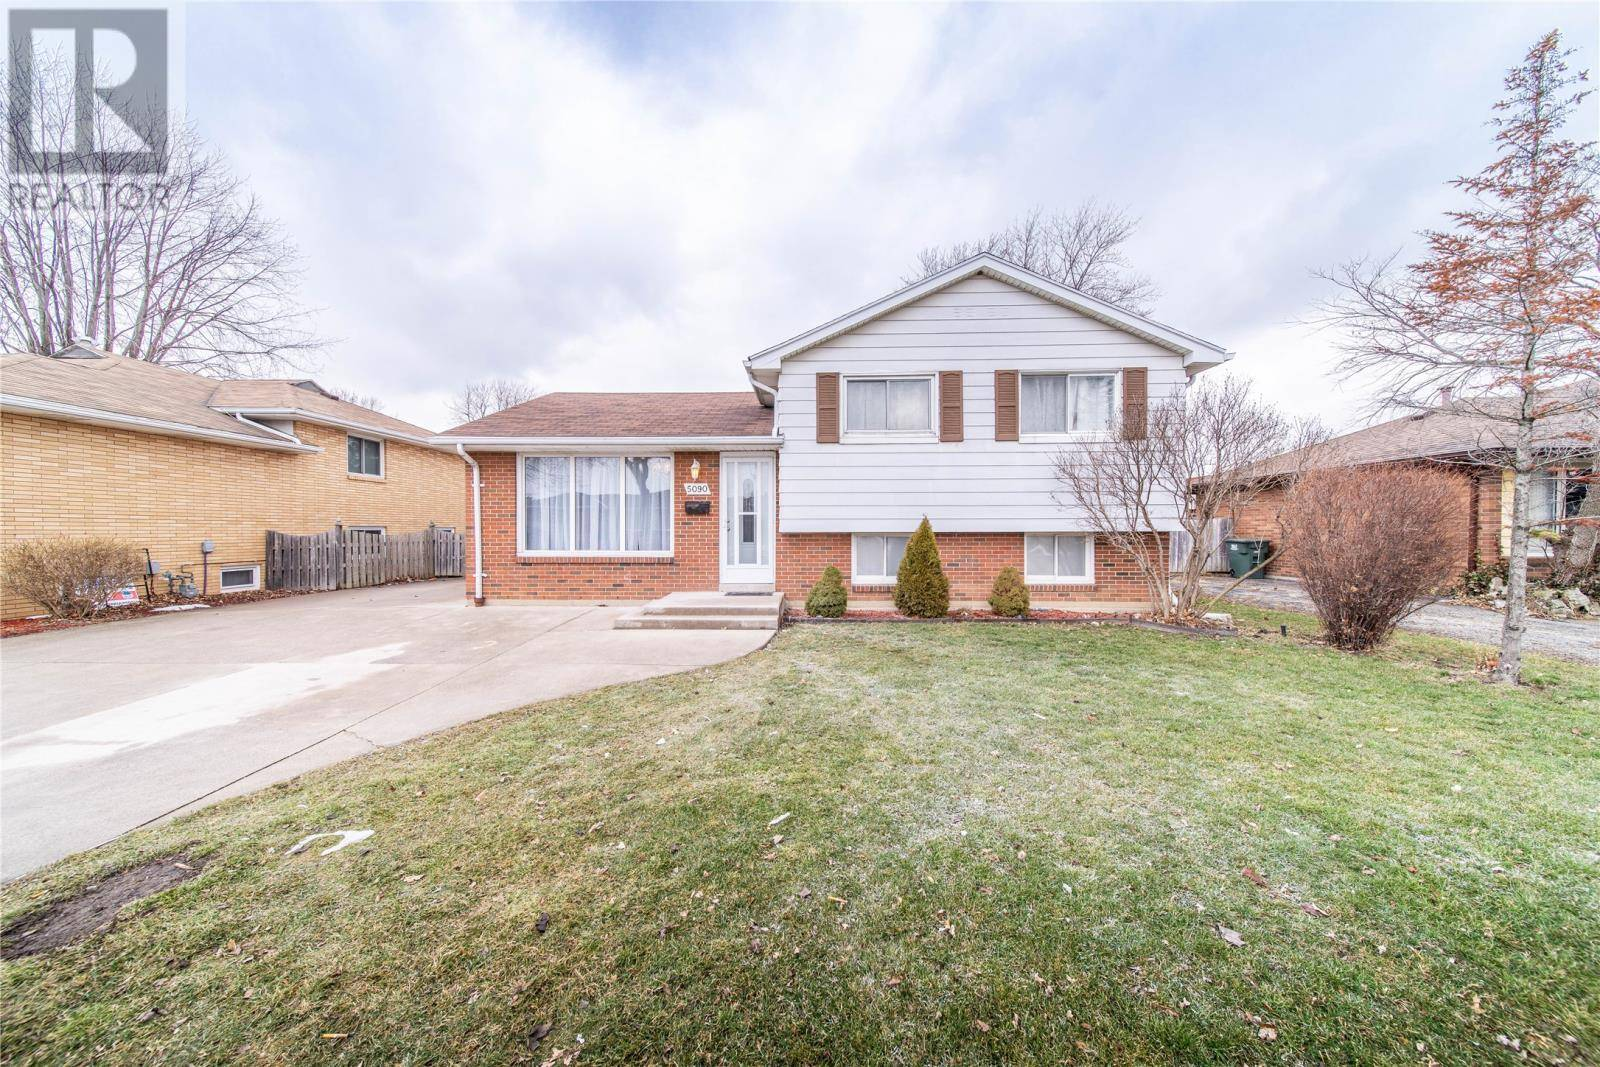 House for sale at 5090 Grand Blvd Windsor Ontario - MLS: 20002071